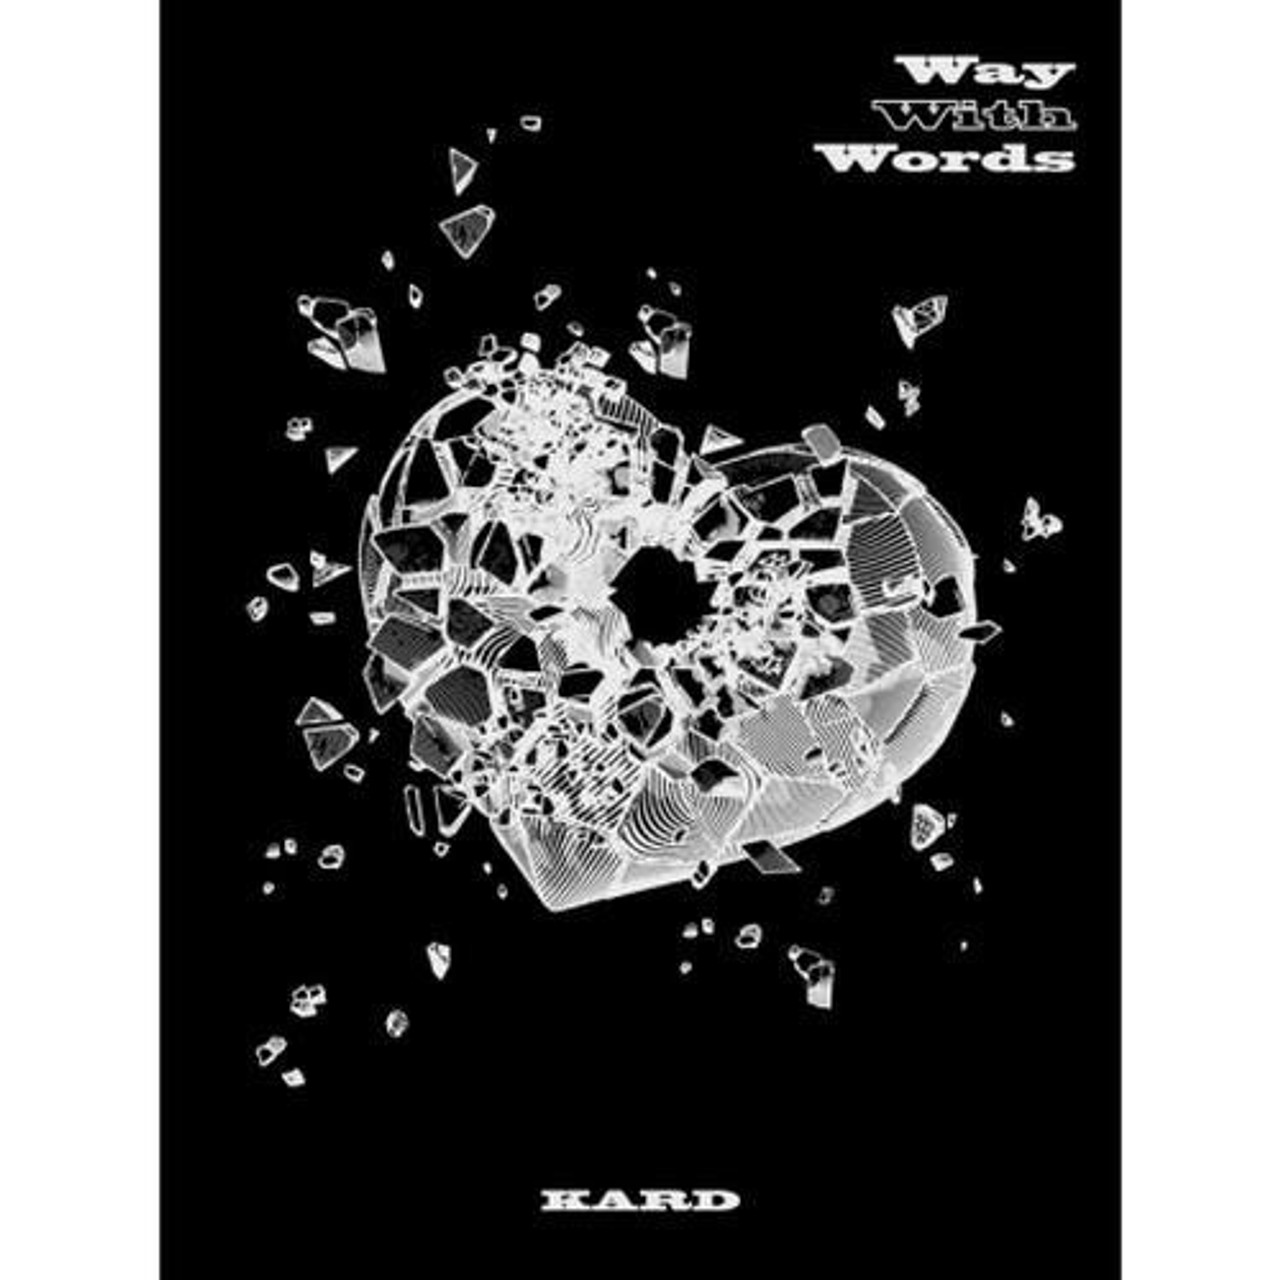 KARD - 1st Single [WAY WITH WORDS]